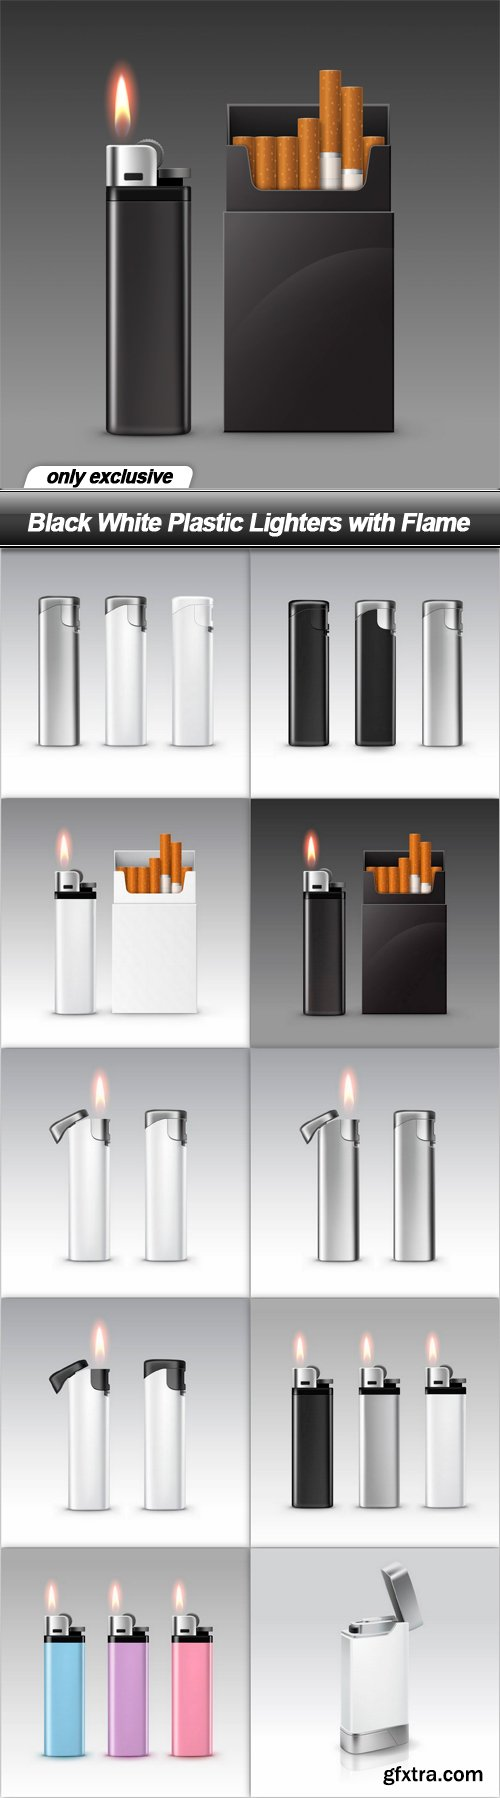 Black White Plastic Lighters with Flame - 10 EPS